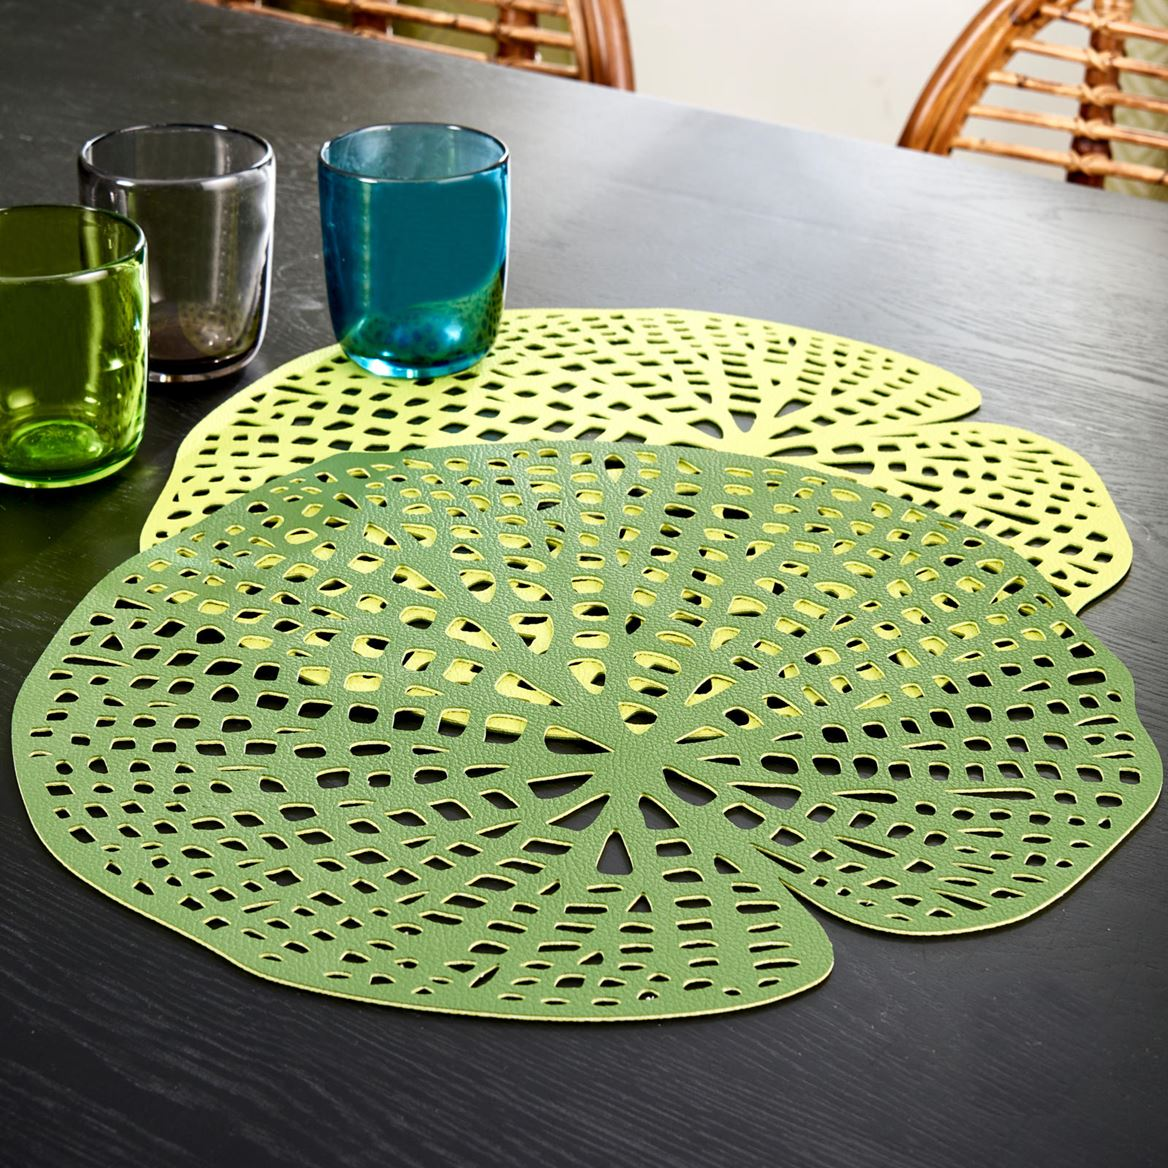 WATER LILY Set de table vert Larg. 38 x Long. 38 cm_water-lily-set-de-table-vert-larg--38-x-long--38-cm